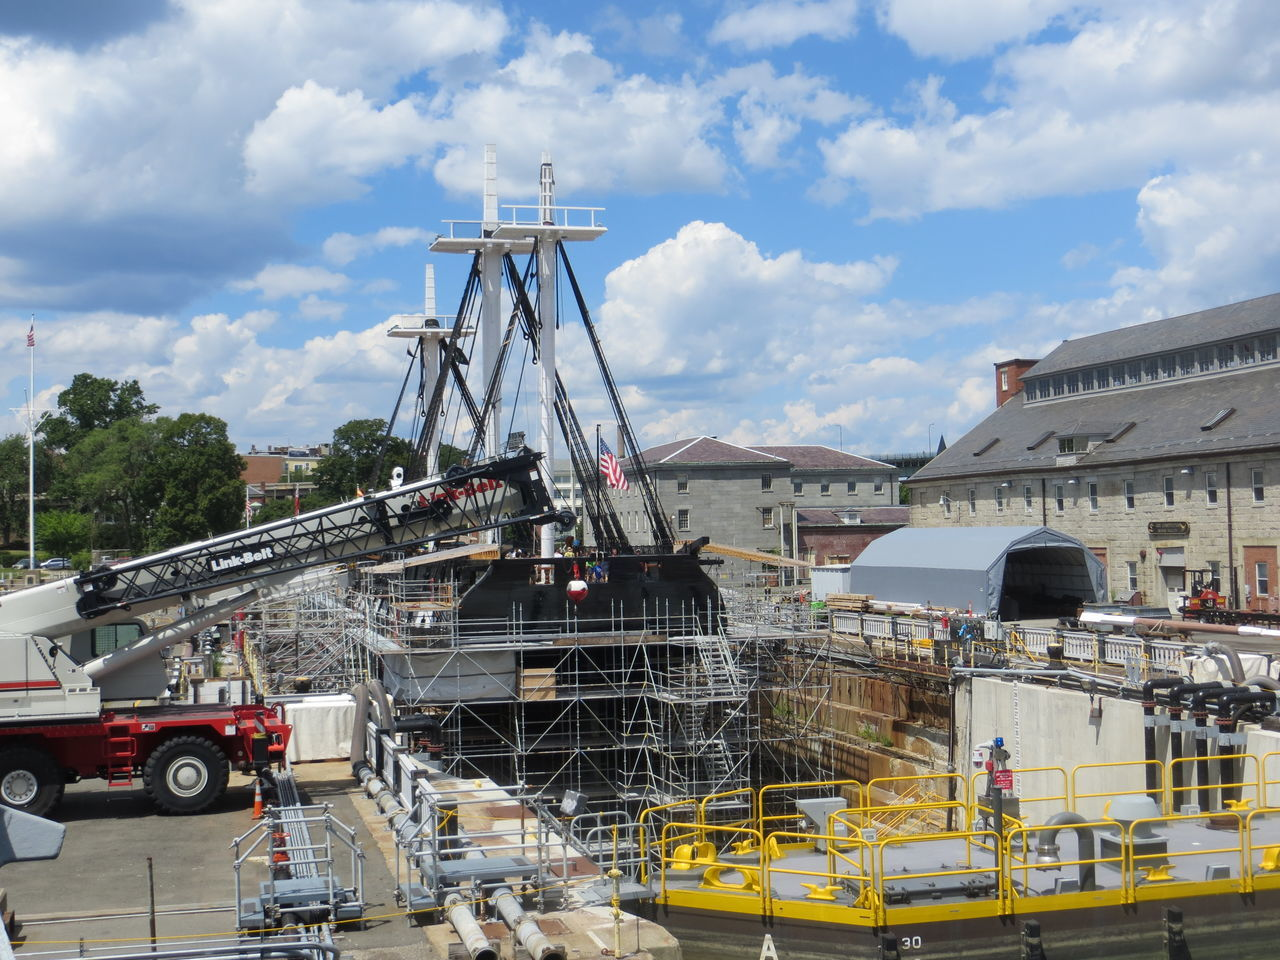 Boston Charles Town Navy Yard Old Ironsides Tall Ship Repair USS Constitution